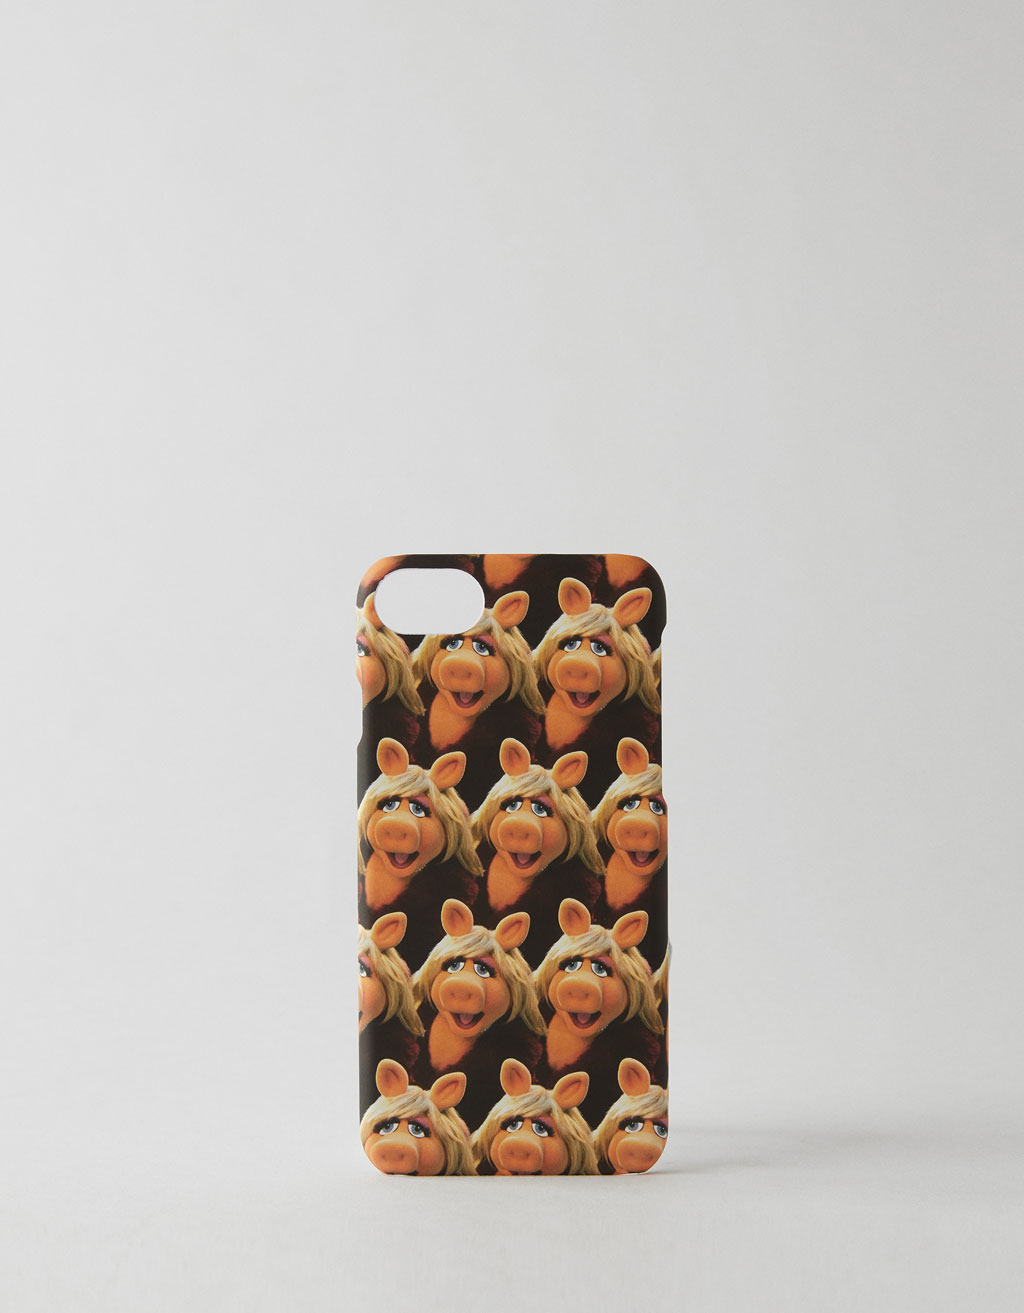 Muppets Miss Piggy iPhone 6 / 6S / 7 / 8 case